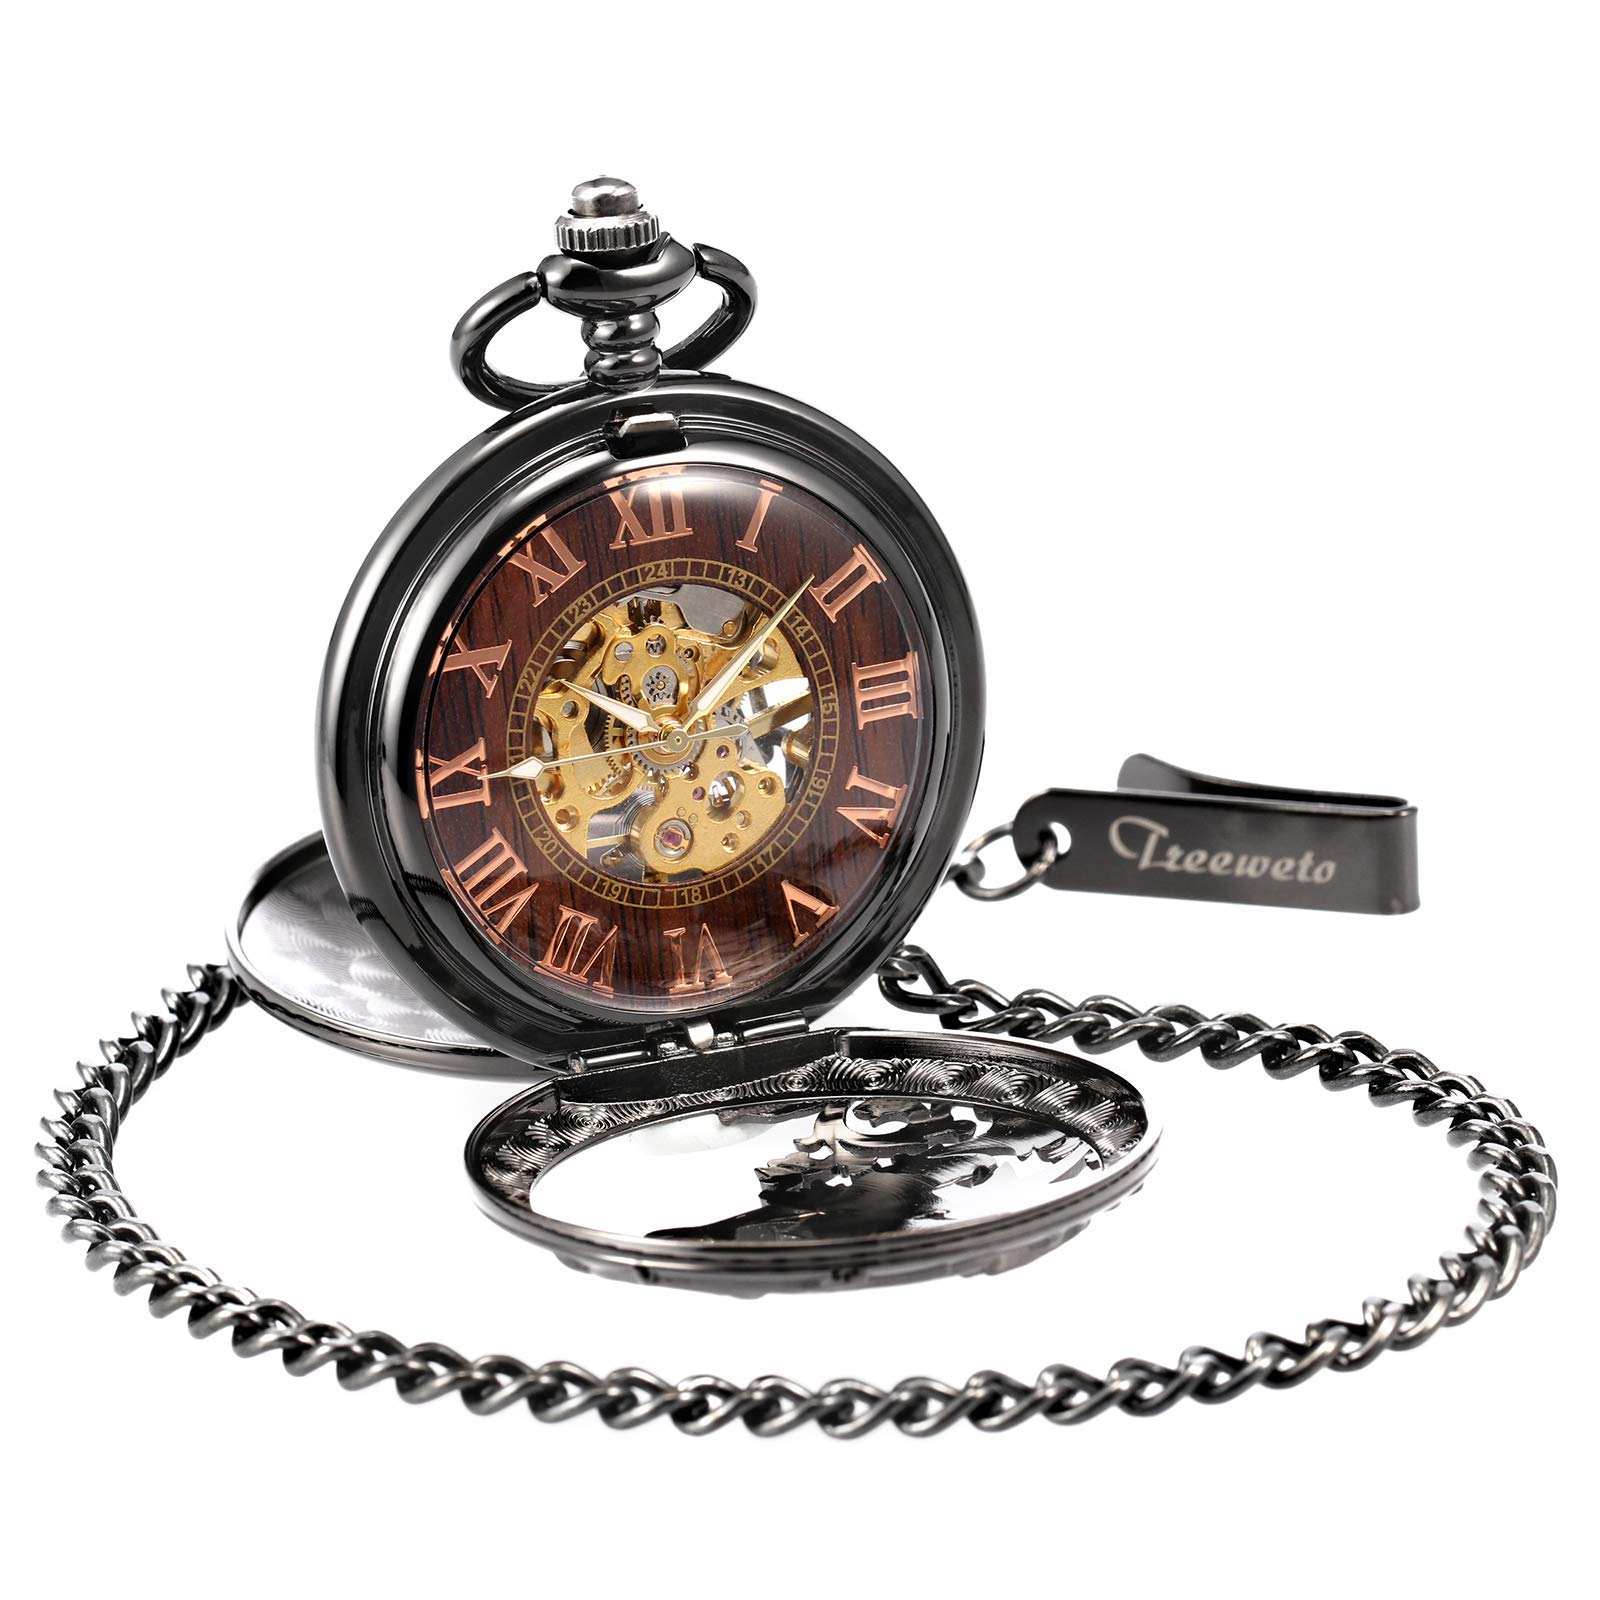 Treeweto Antique Dragon Mechanical Skeleton Pocket Watch with Chain by TREEWETO (Image #5)